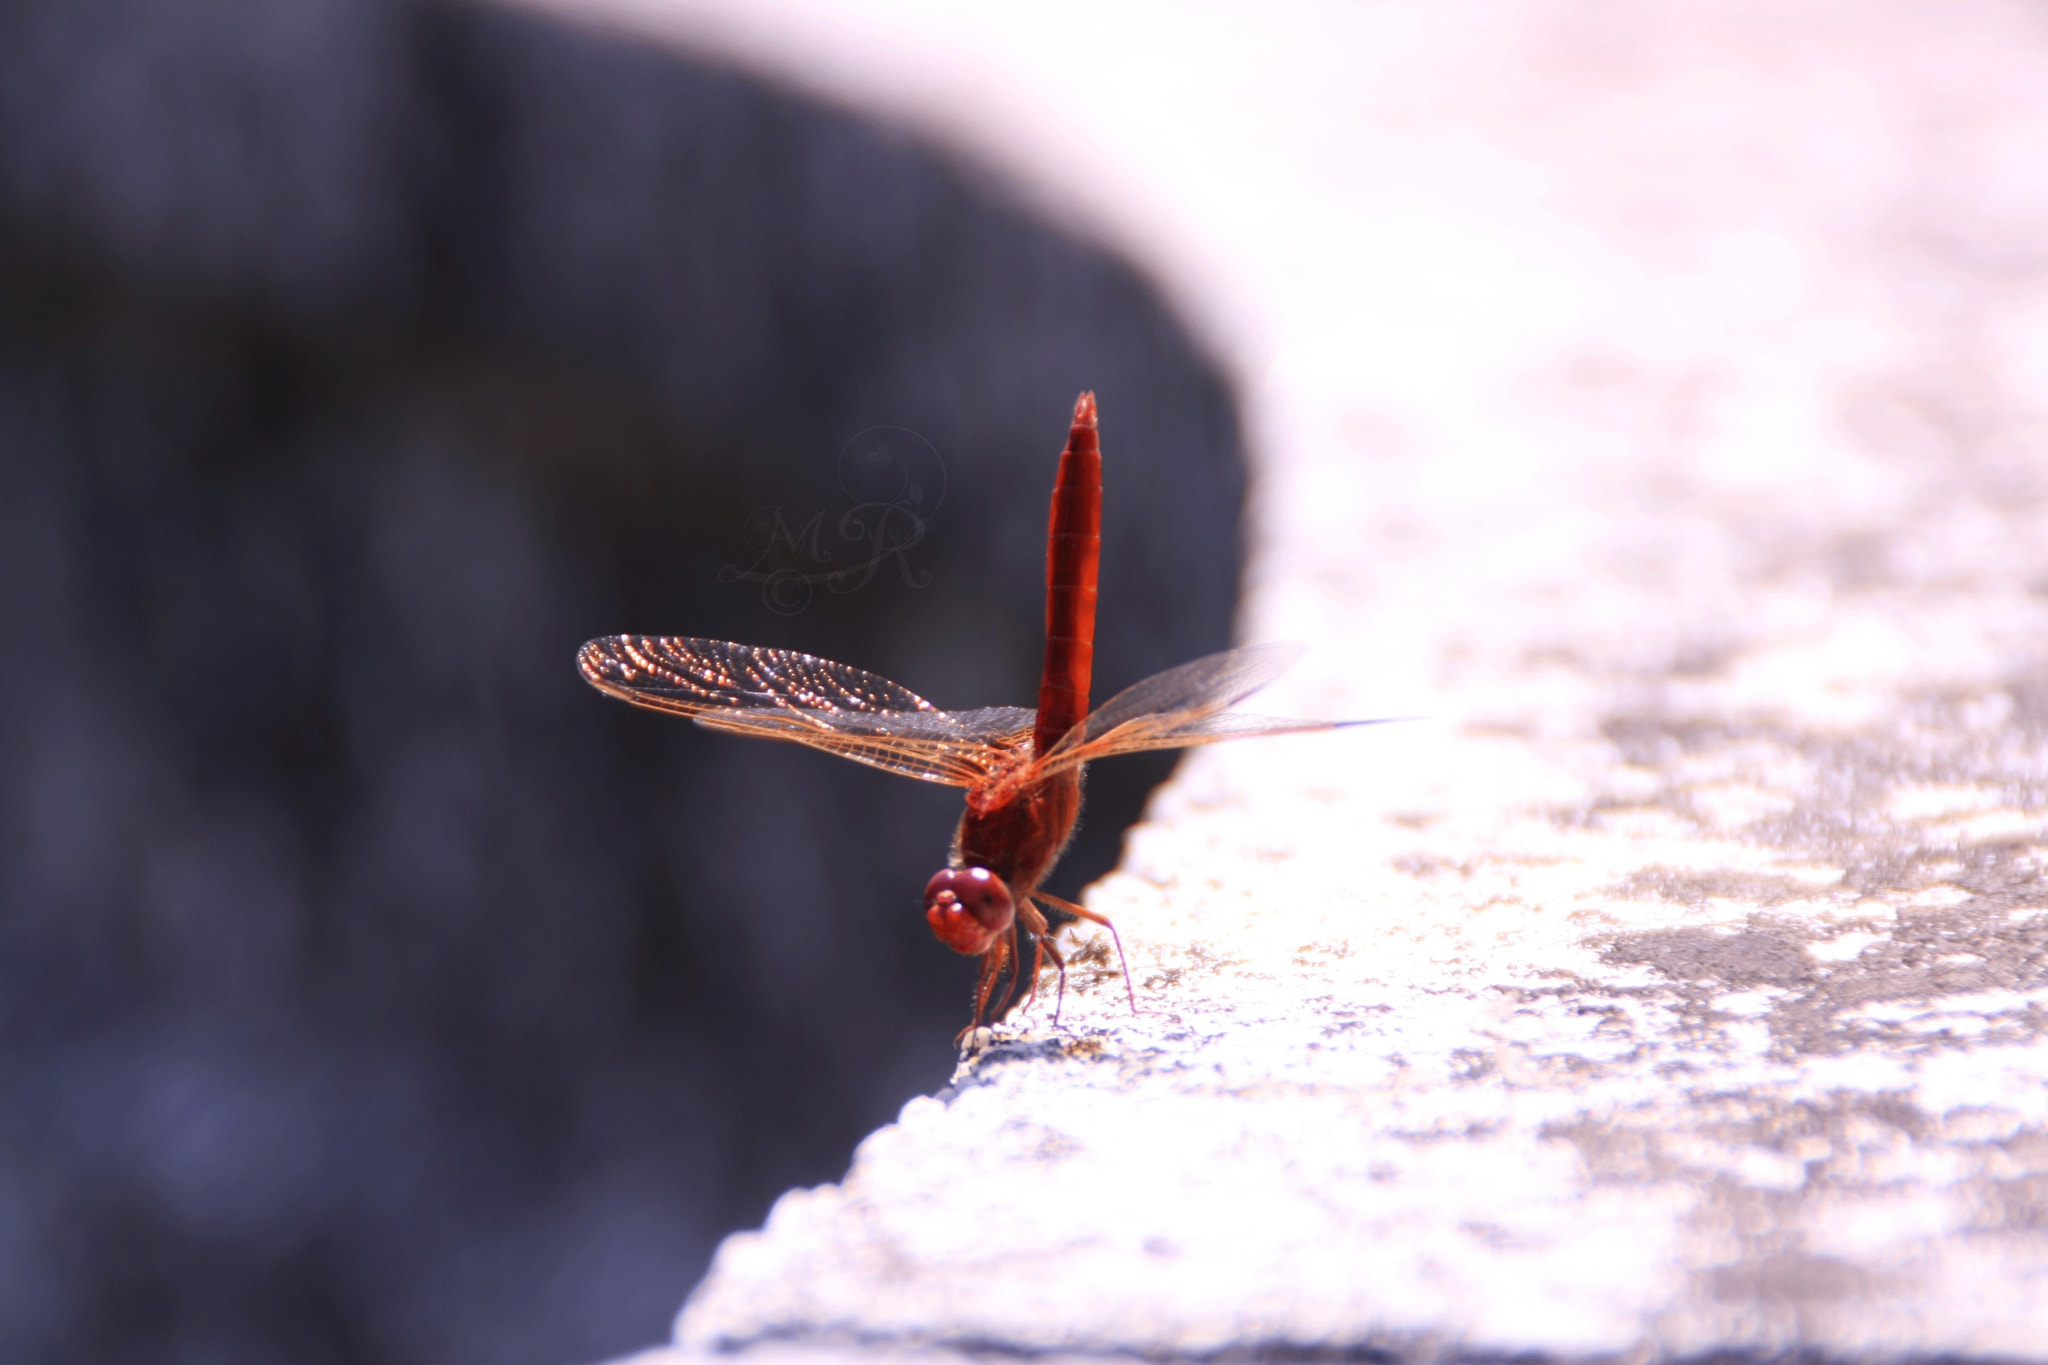 Photograph dragonfly by Rosamaria Marchetti on 500px